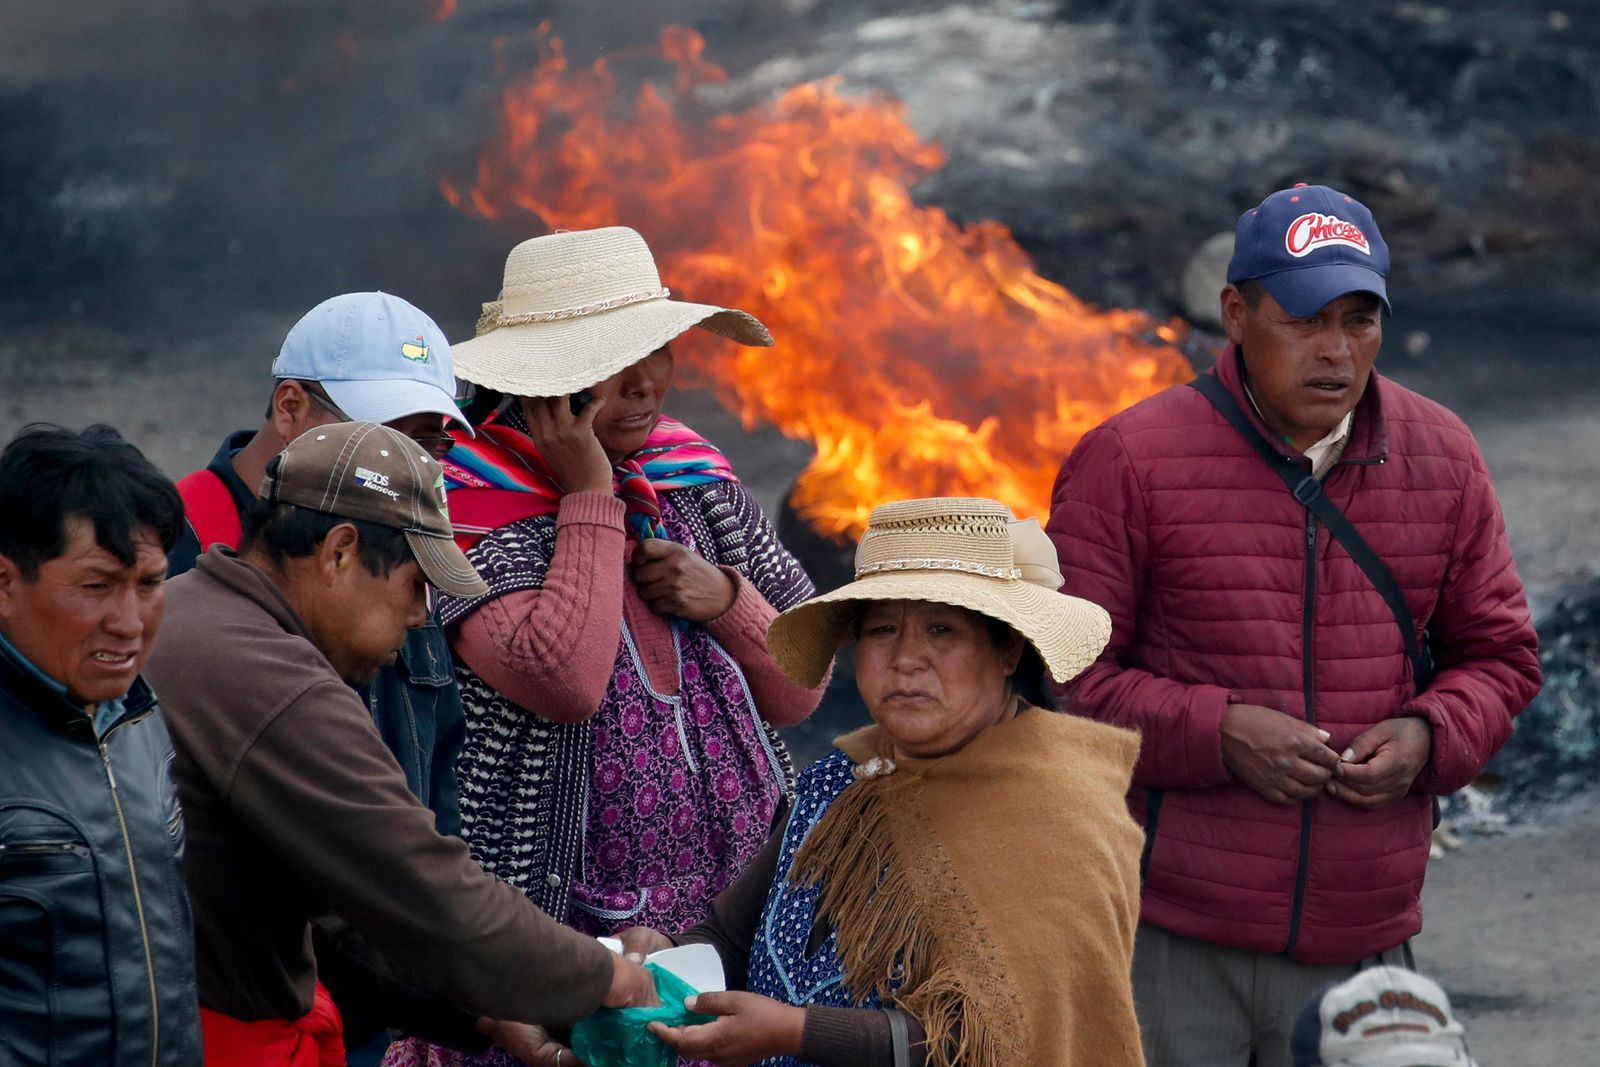 Supporters of former President Evo Morales chew coca leaves at a barricade in El Alto, on the outskirts of La Paz, Bolivia, Tuesday, Nov. 19, 2019. (AP Photo/Natacha Pisarenko)